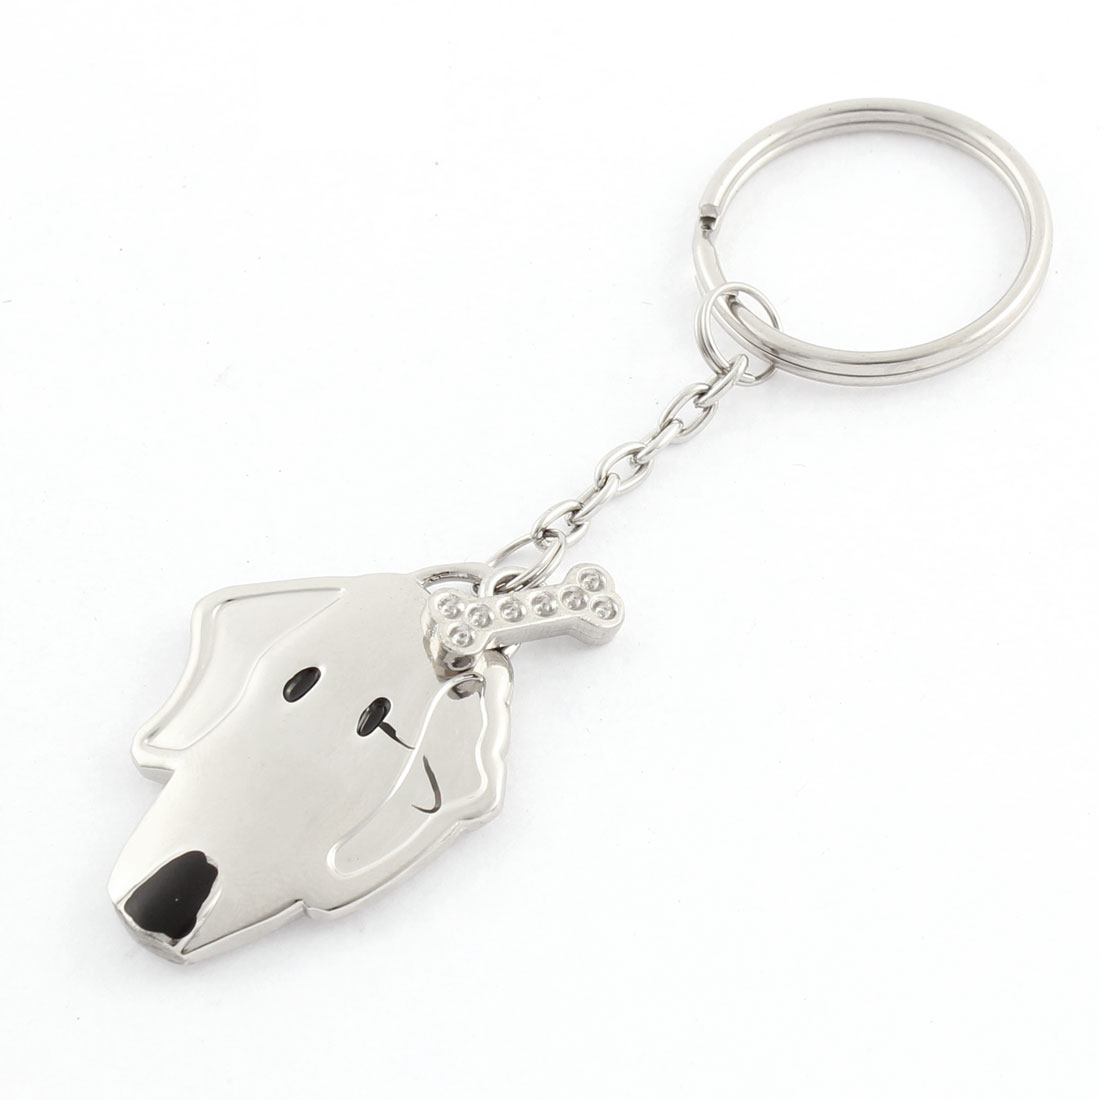 Silver Tone Metal Split Ring Dog Head Bone Pendant Keychain Keyring Key Fobs